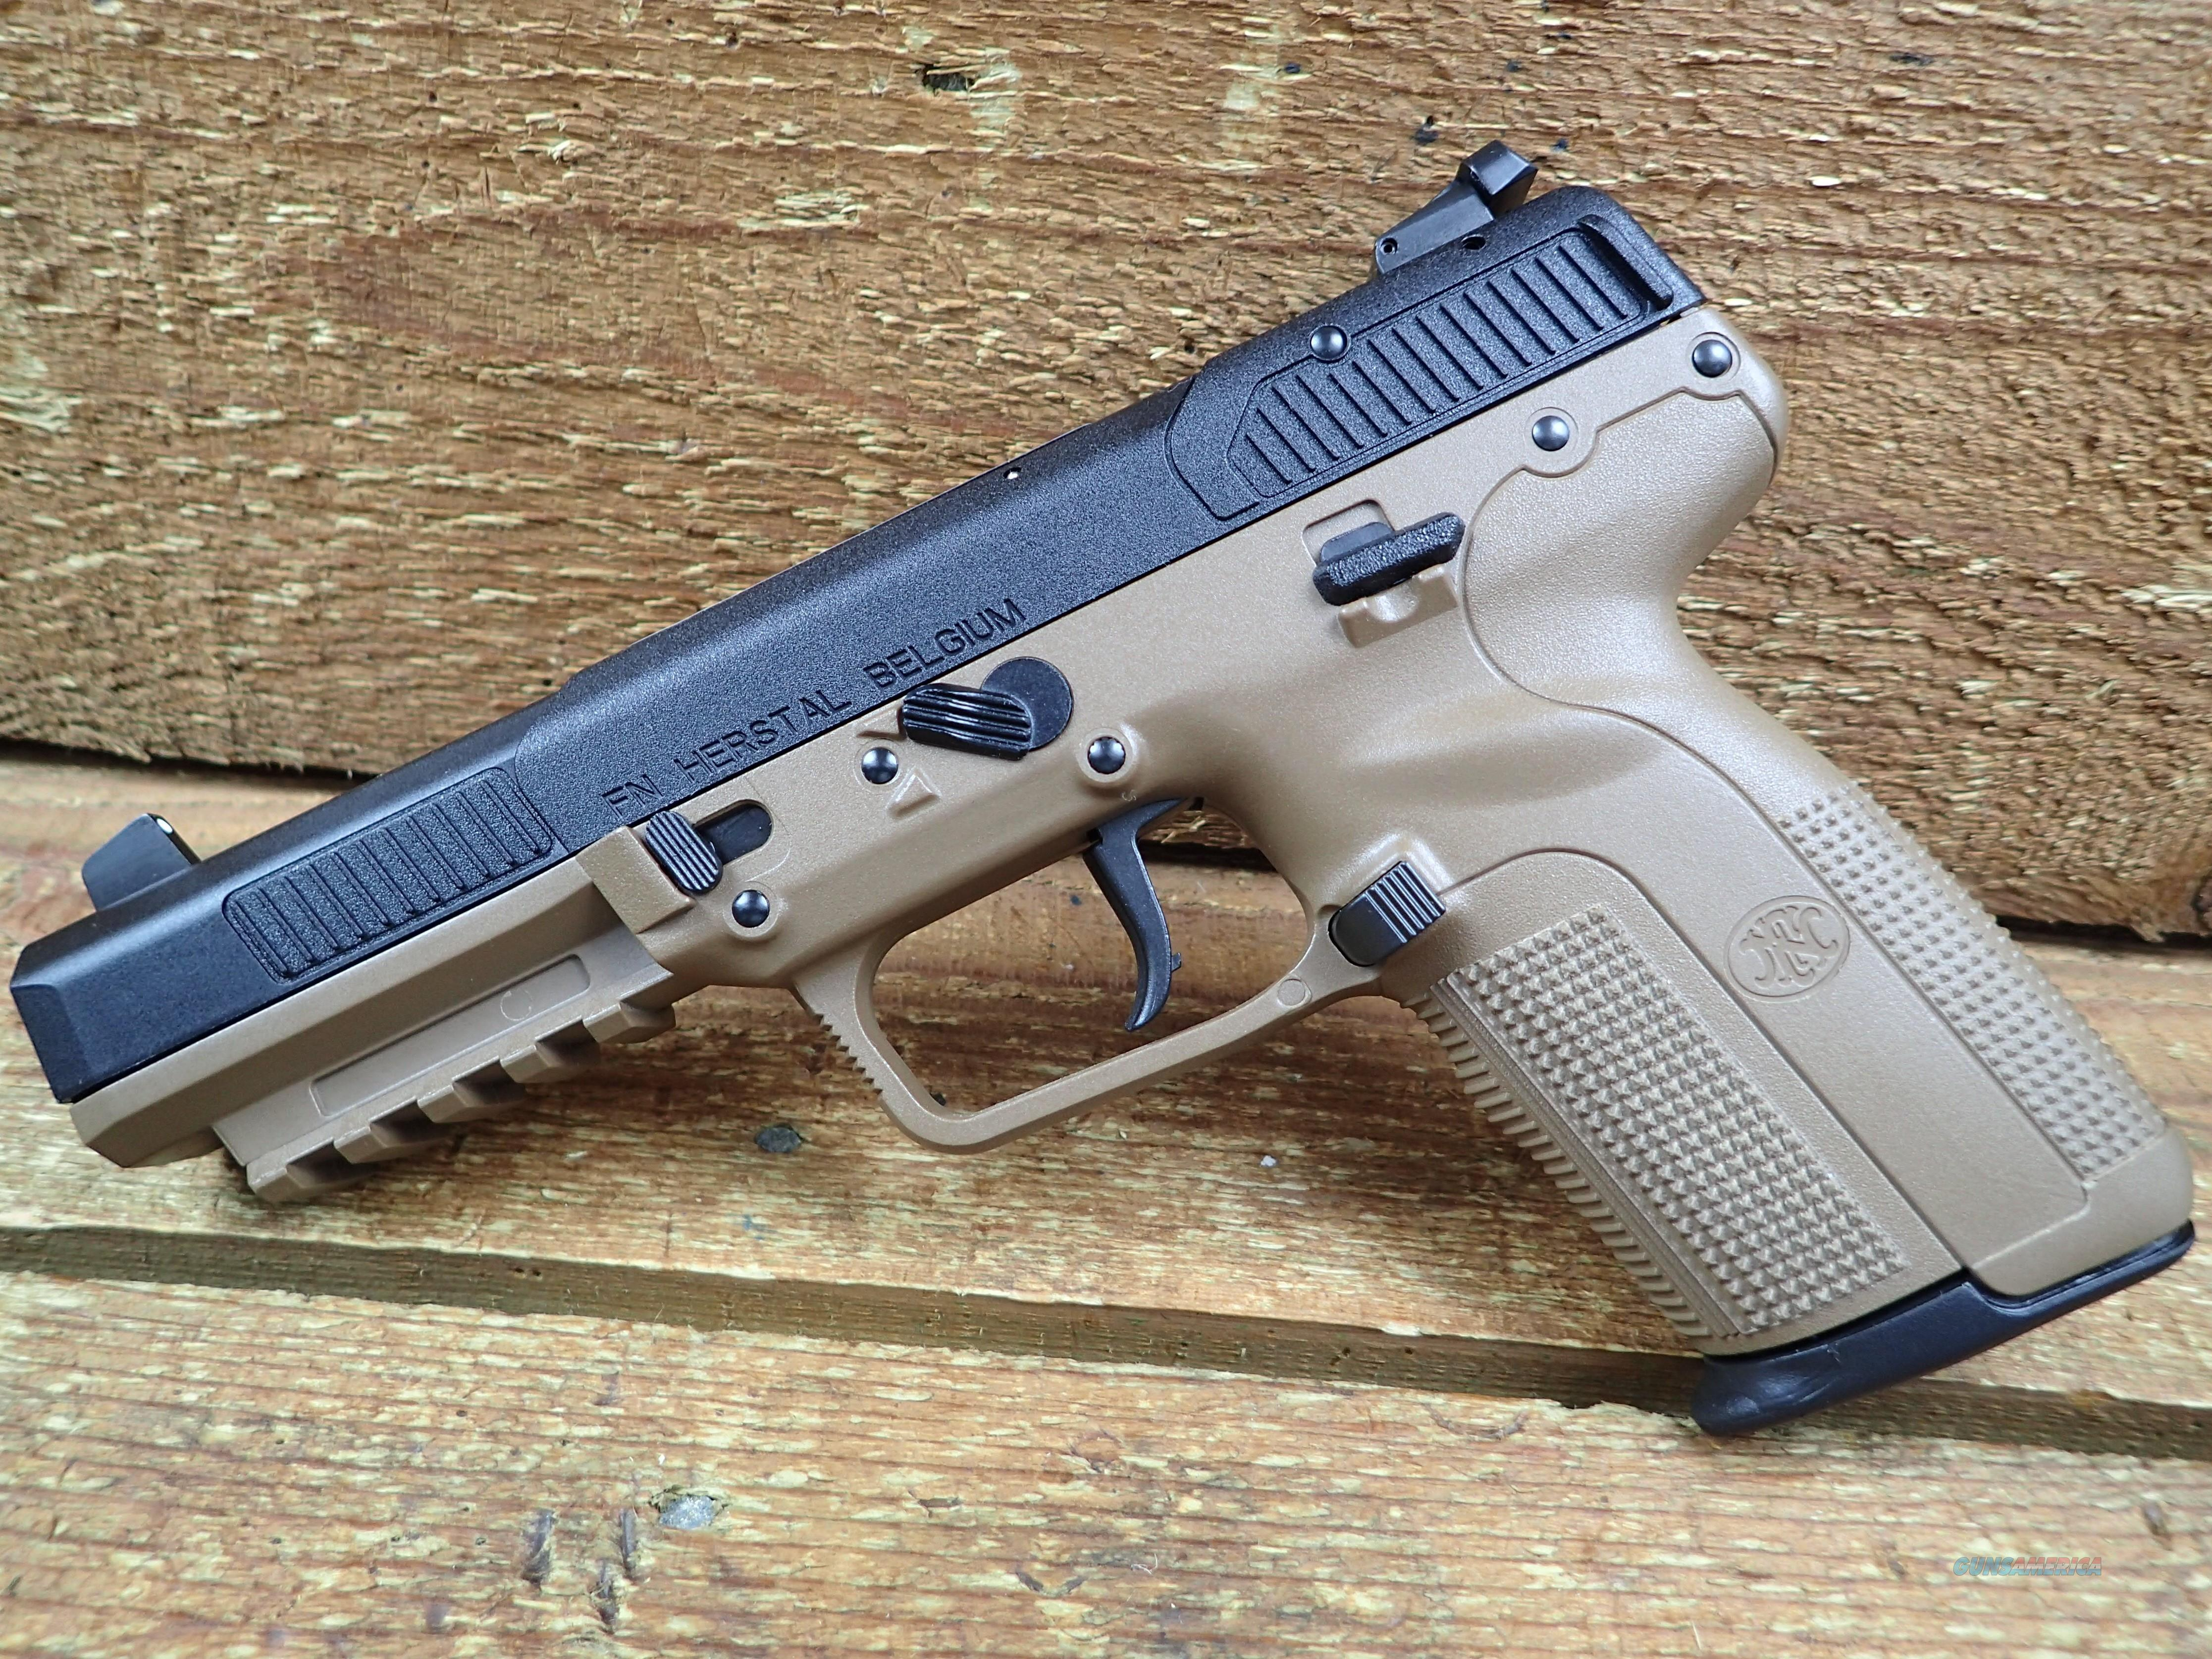 FNH Five-seveN 5.7X28 MKII 3-20RD Mags  / EZ Pay $76 Monthly  Pay Off Any Time!  Guns > Pistols > FNH - Fabrique Nationale (FN) Pistols > FiveSeven